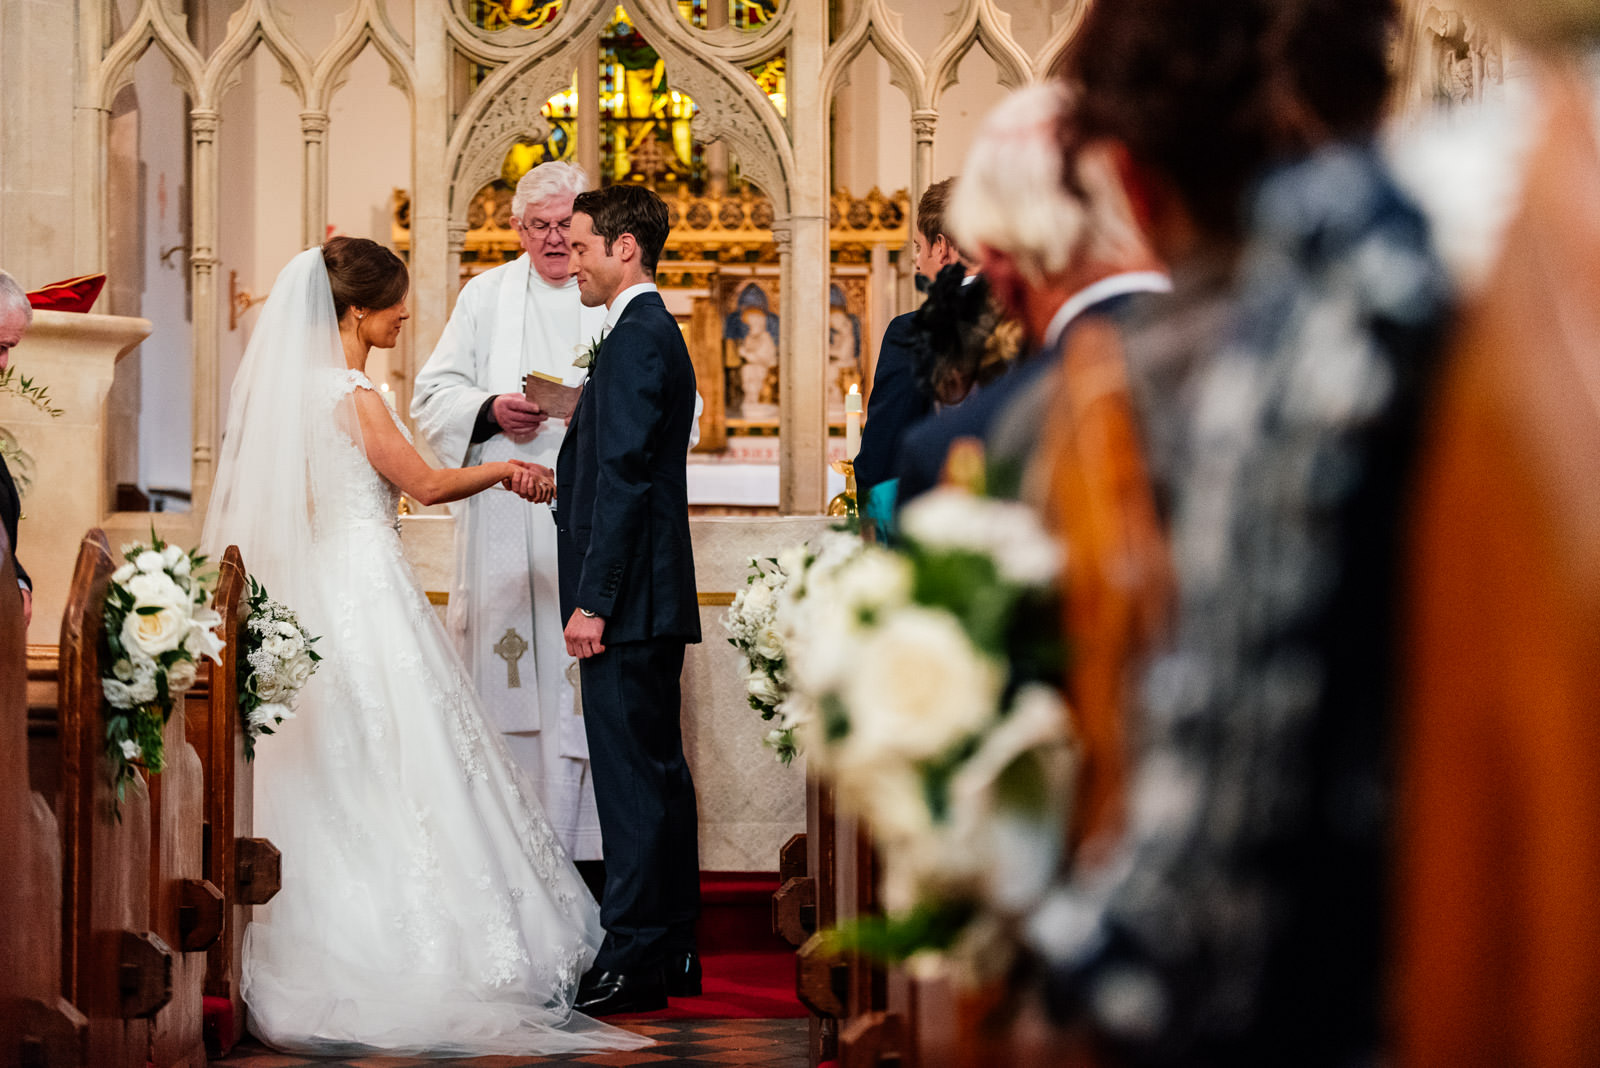 Bride and groom exchanging vows in church